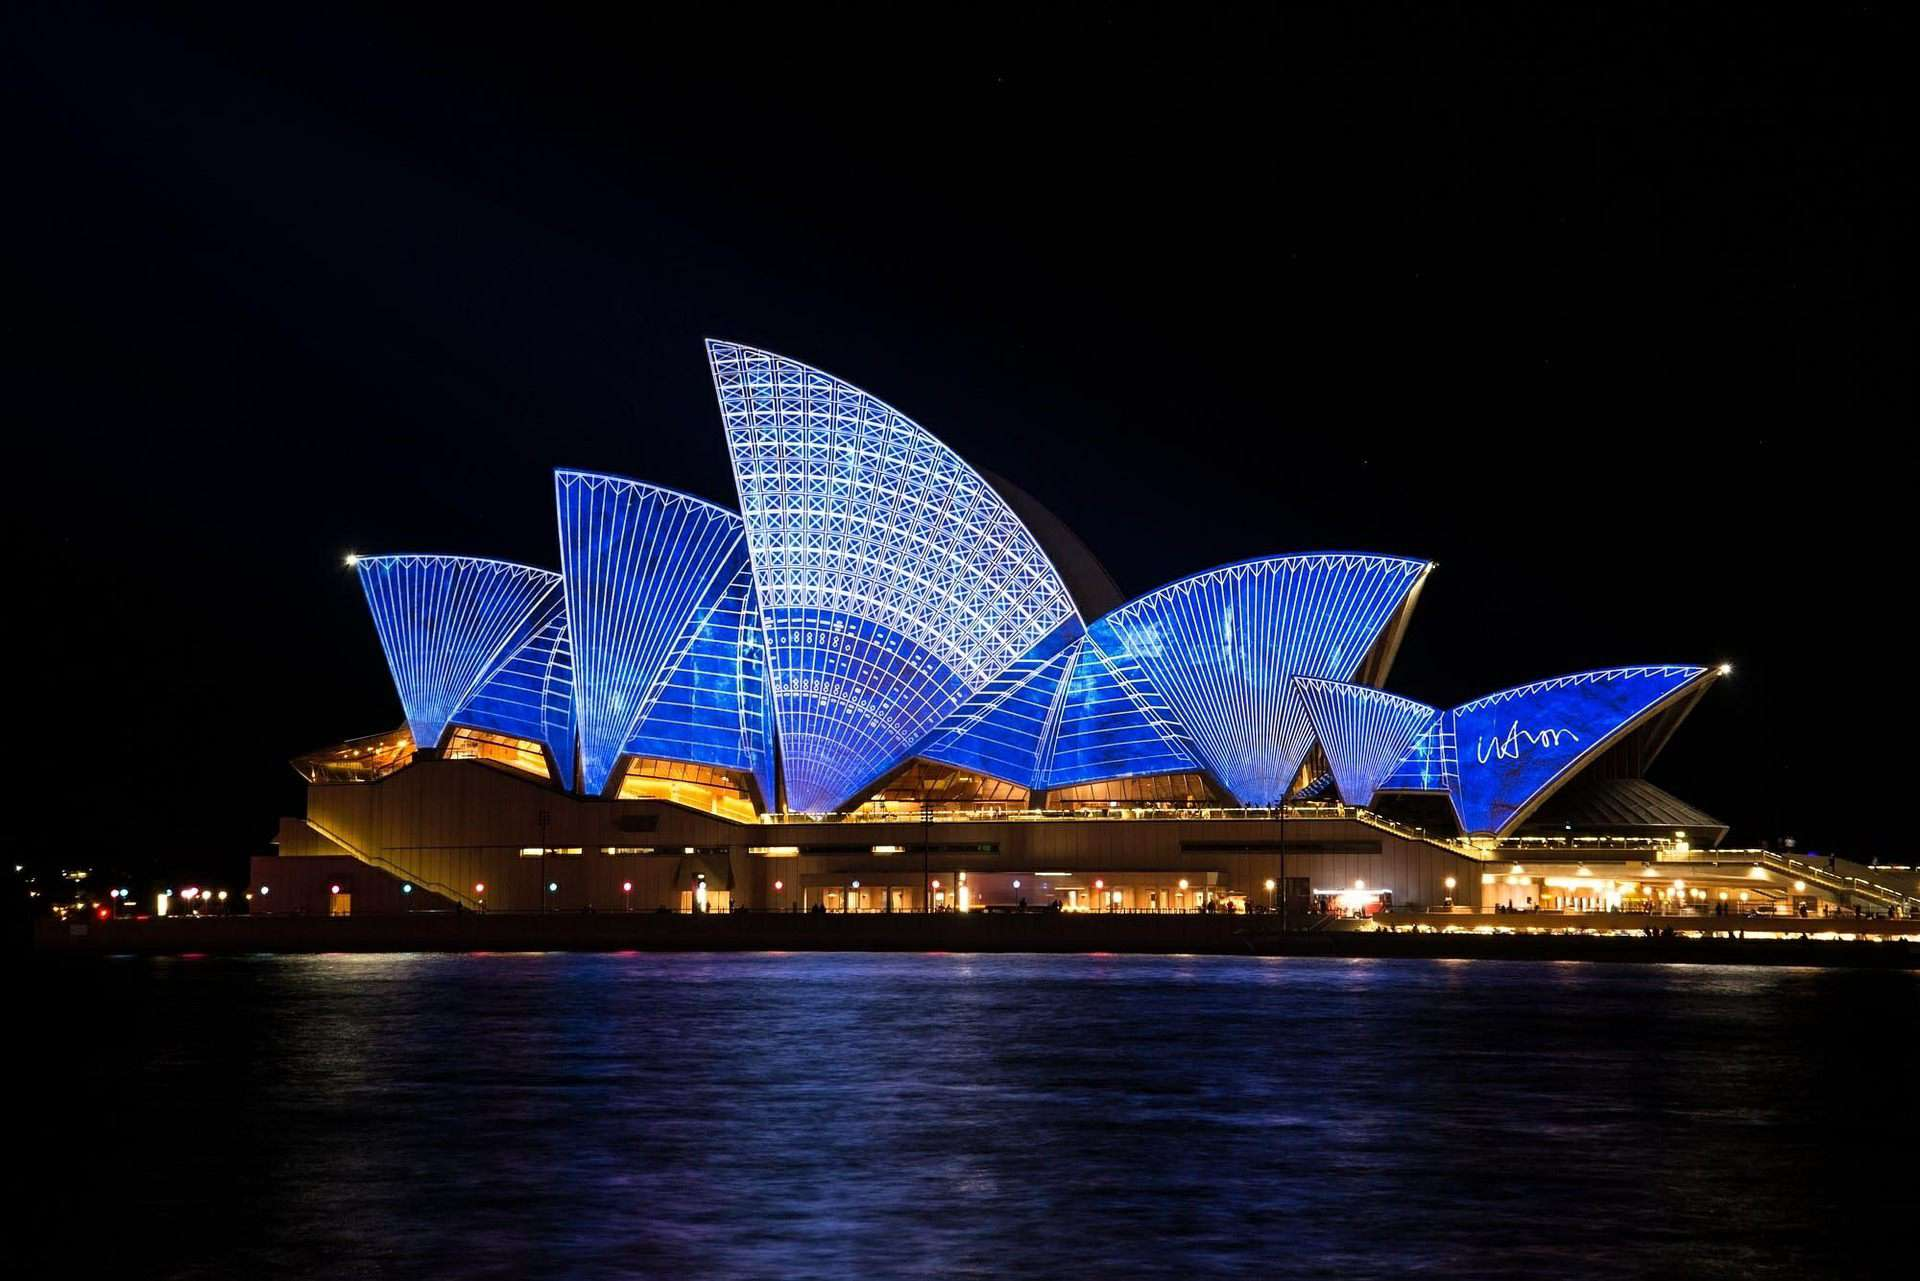 Sydney Opera House at night with blue lights